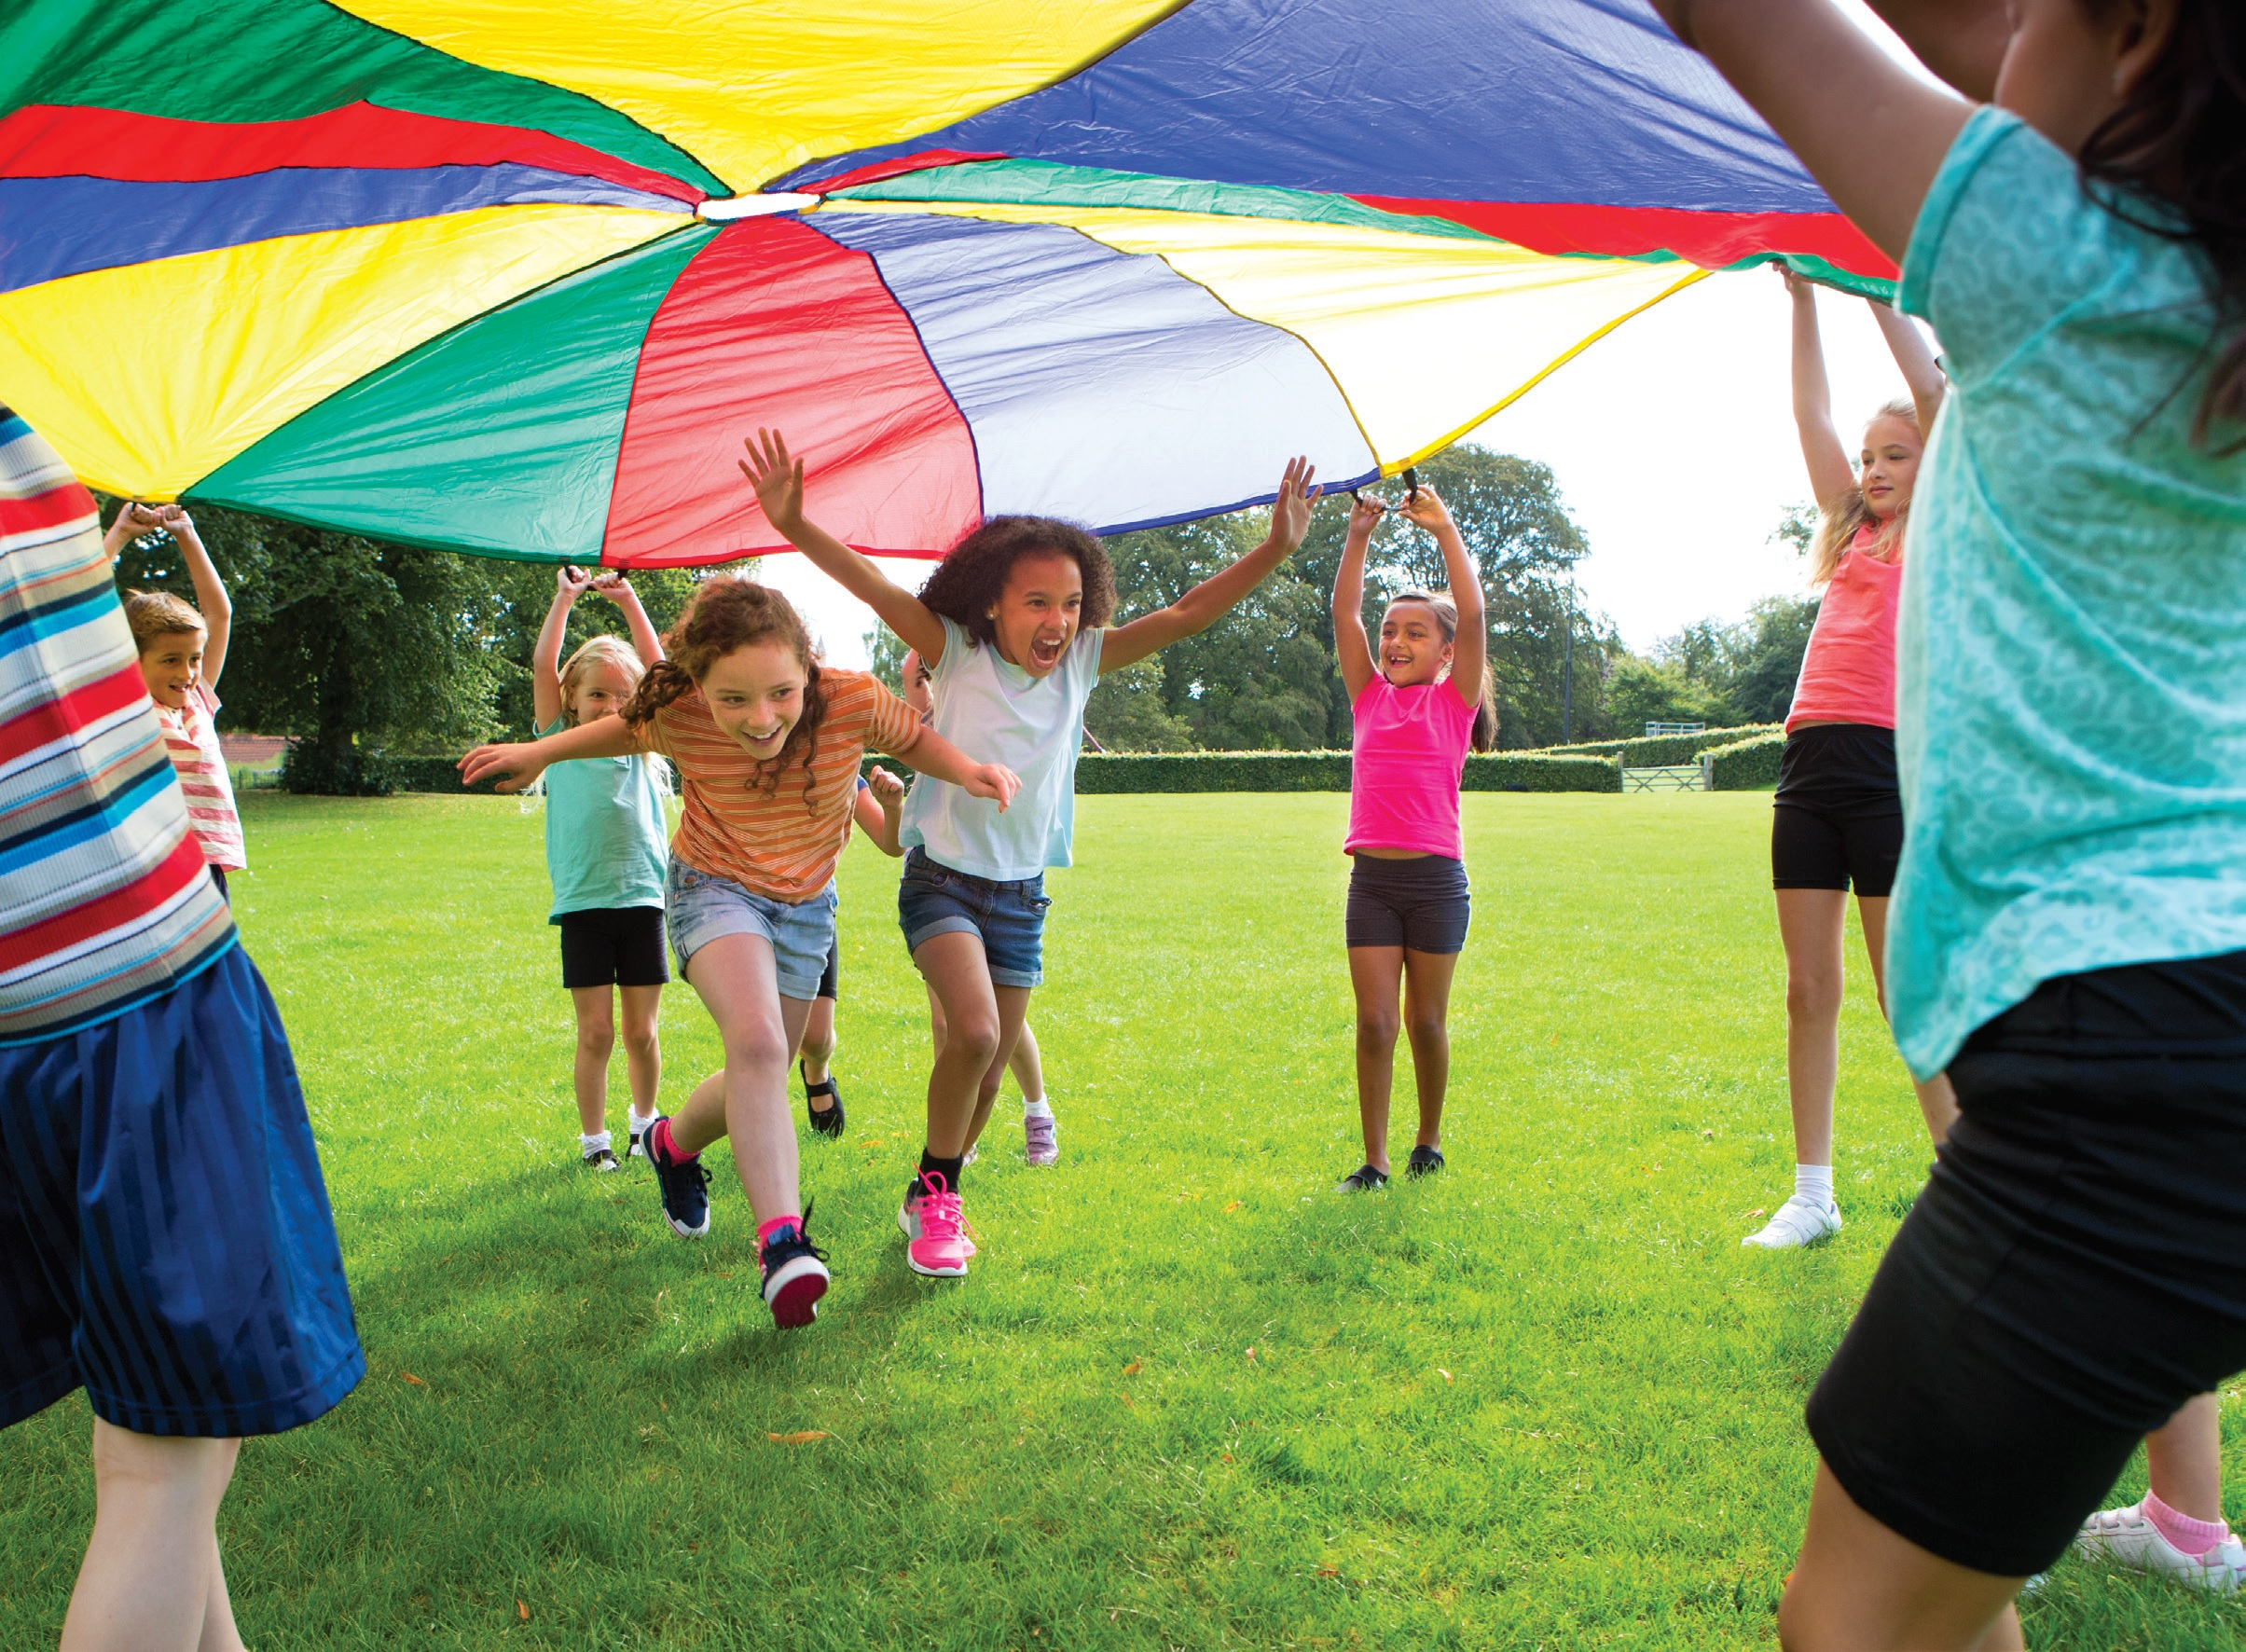 U.S. Report Card on Physical Activity for Children and ...